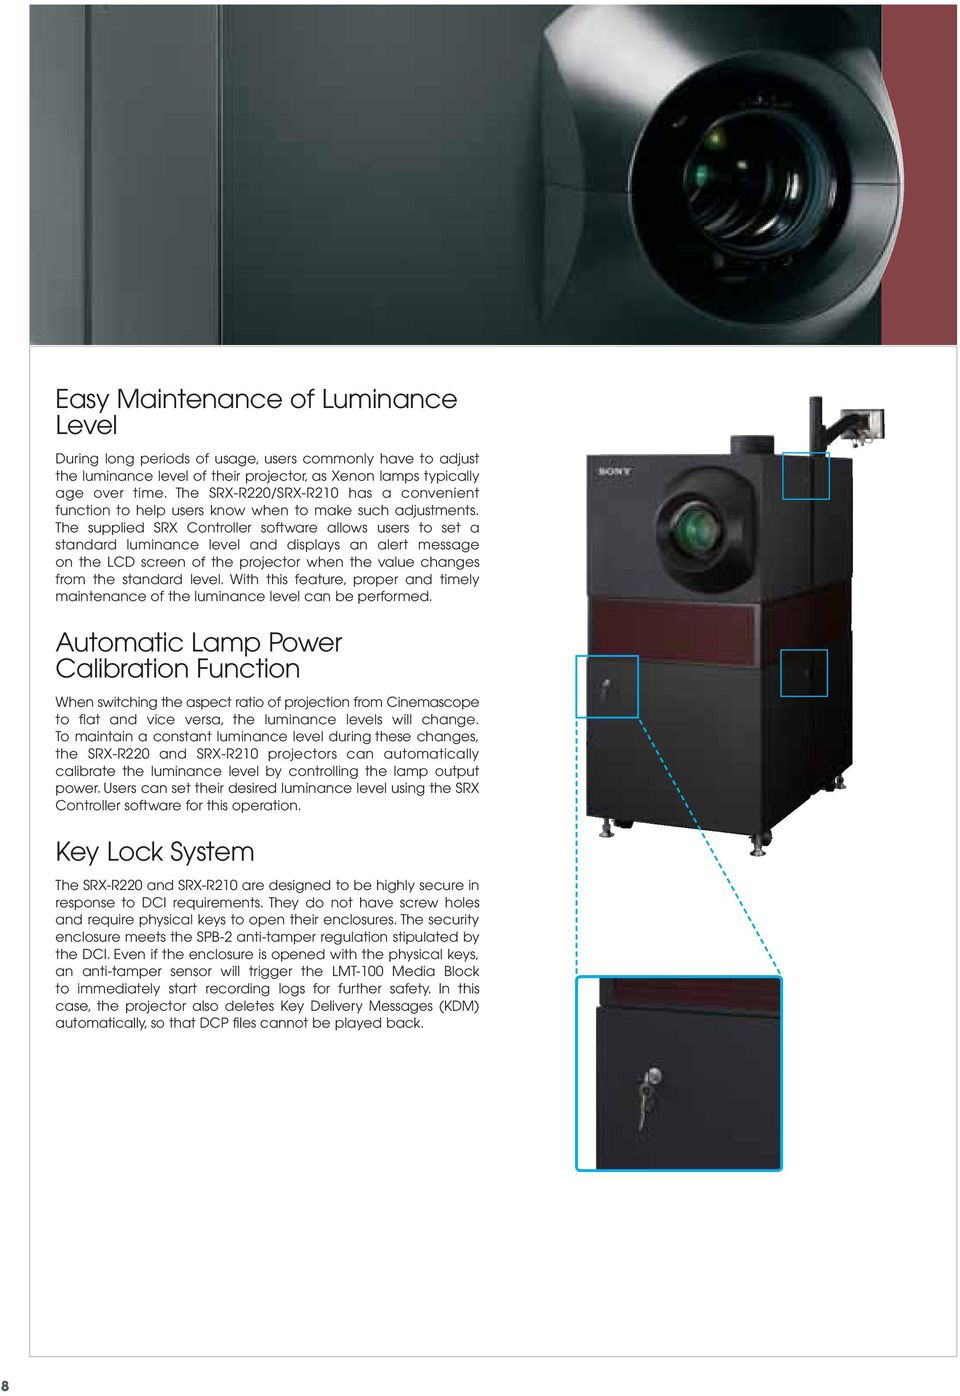 4k Digital Cinema Projectors Srx R220 R210 Media Block Lmt 100 Lcd Projector Multifunction Controller Circuit Diagram Control The Supplied Software Allows Users To Set A Standard Luminance Level And Displays An